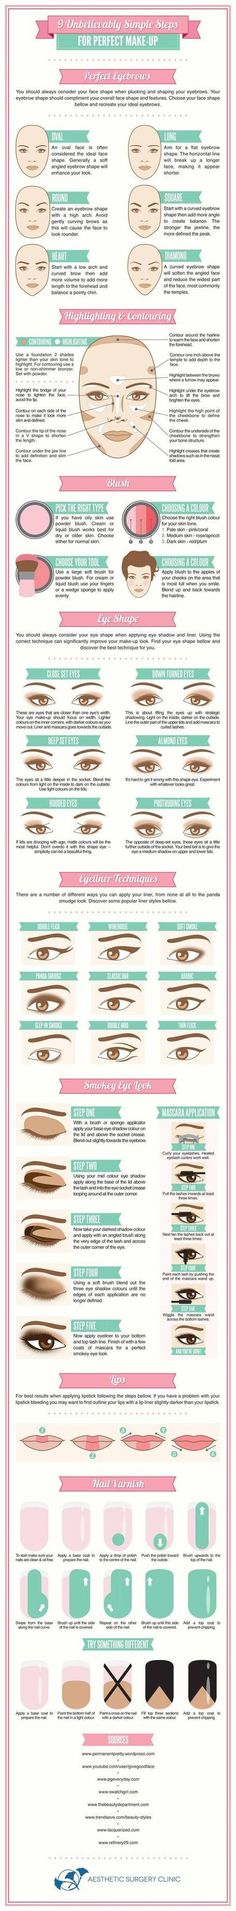 Infographic - simple steps to apply makeup according to your face characteristics. source: imgur.com